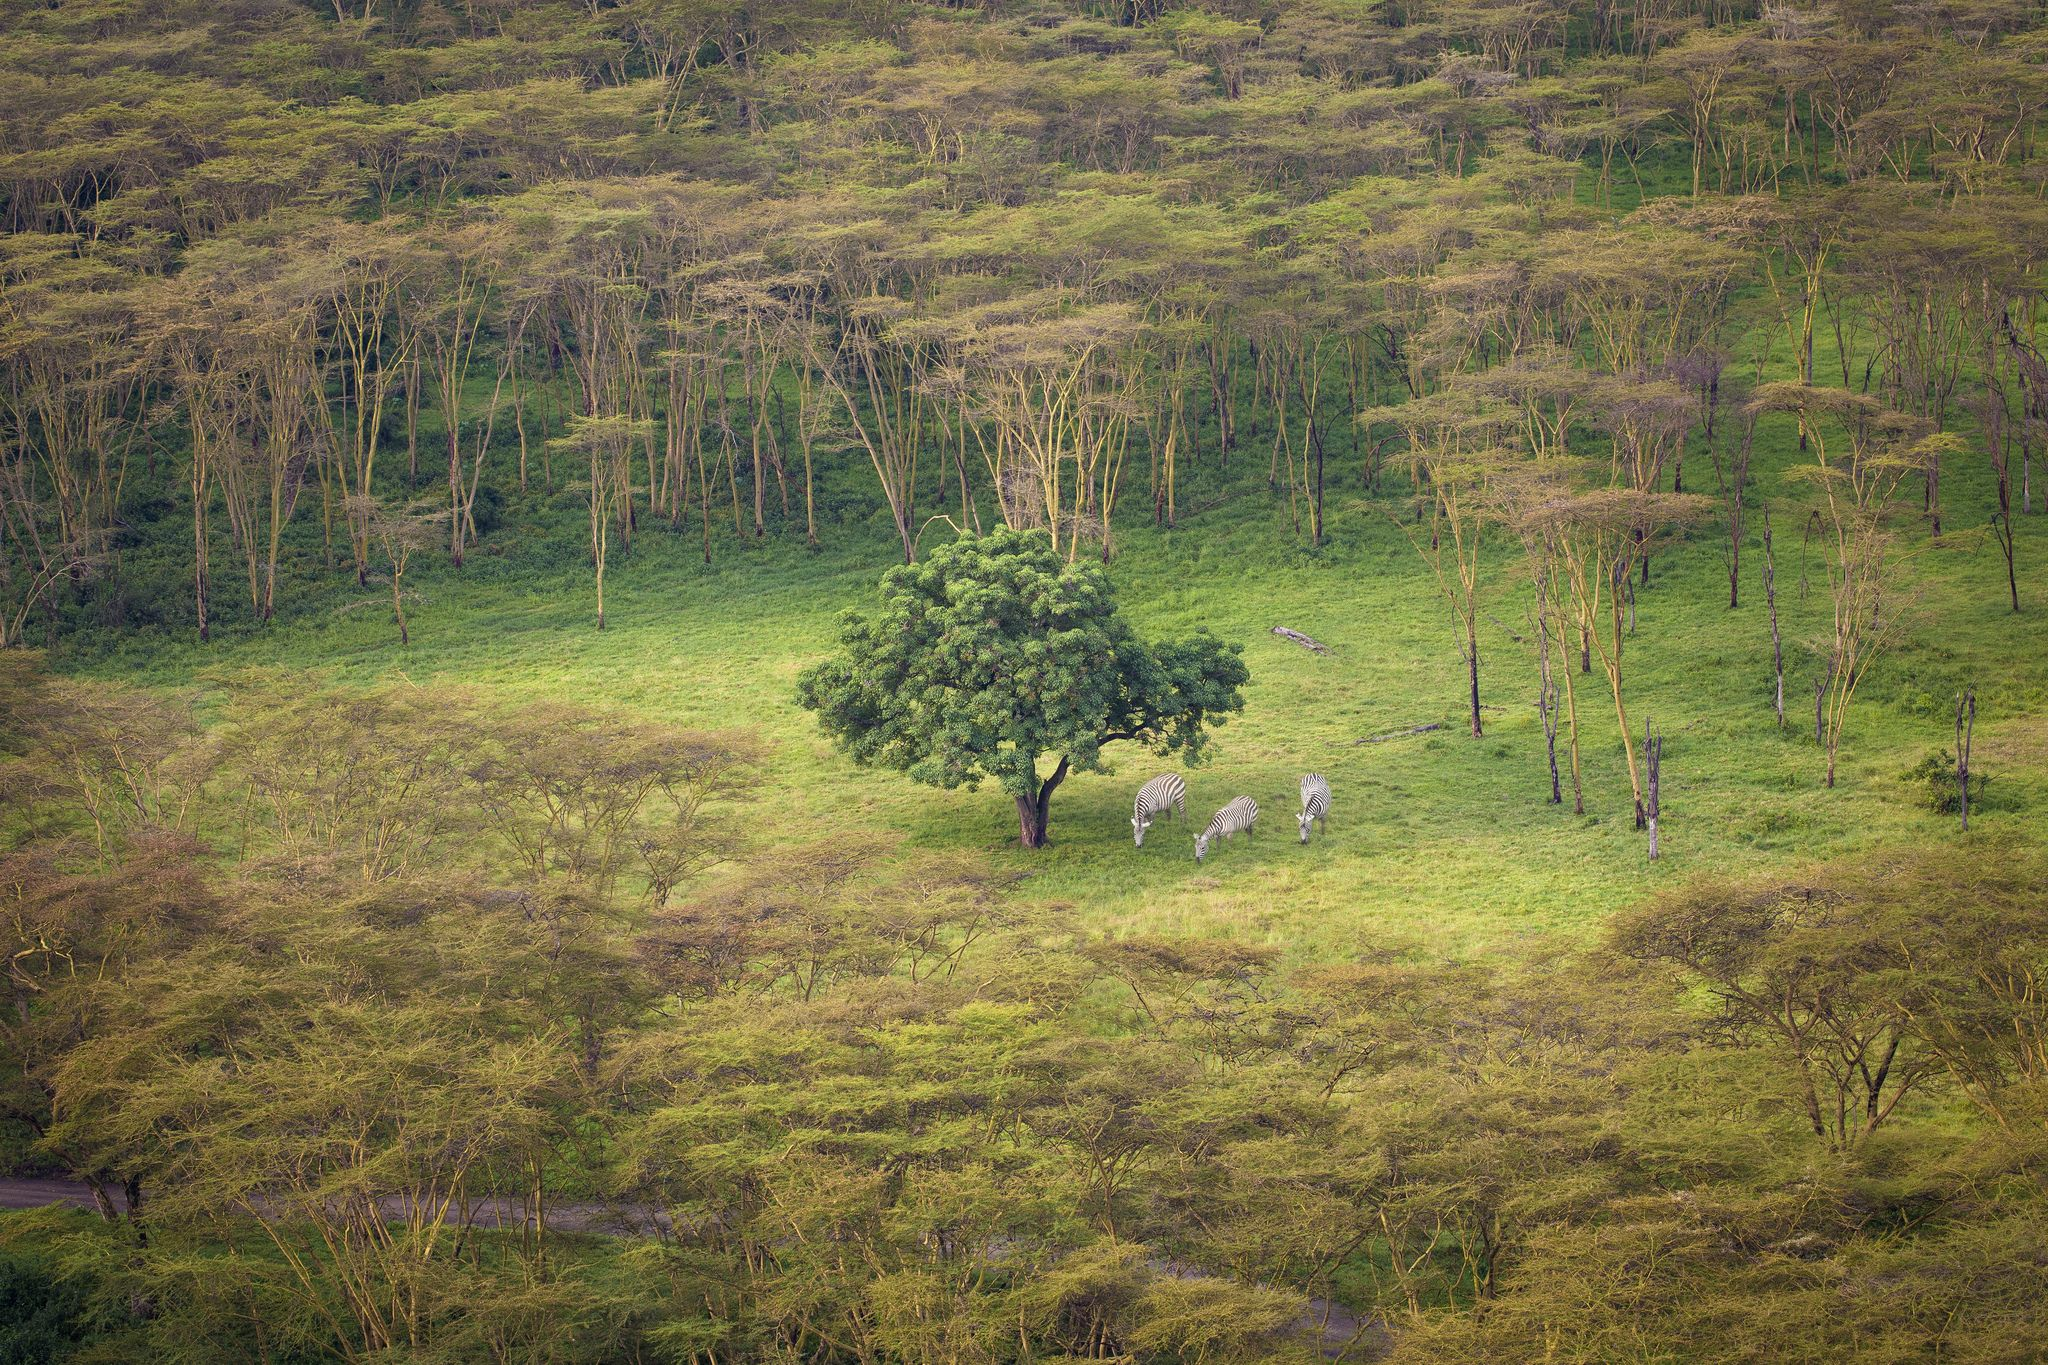 https://flic.kr/p/dSvkJR | Lonely Tree | Three zebras enjoying the grass in a clearing. This was taken from Baboon Cliff in Lake Nakuru National Park in Kenya.